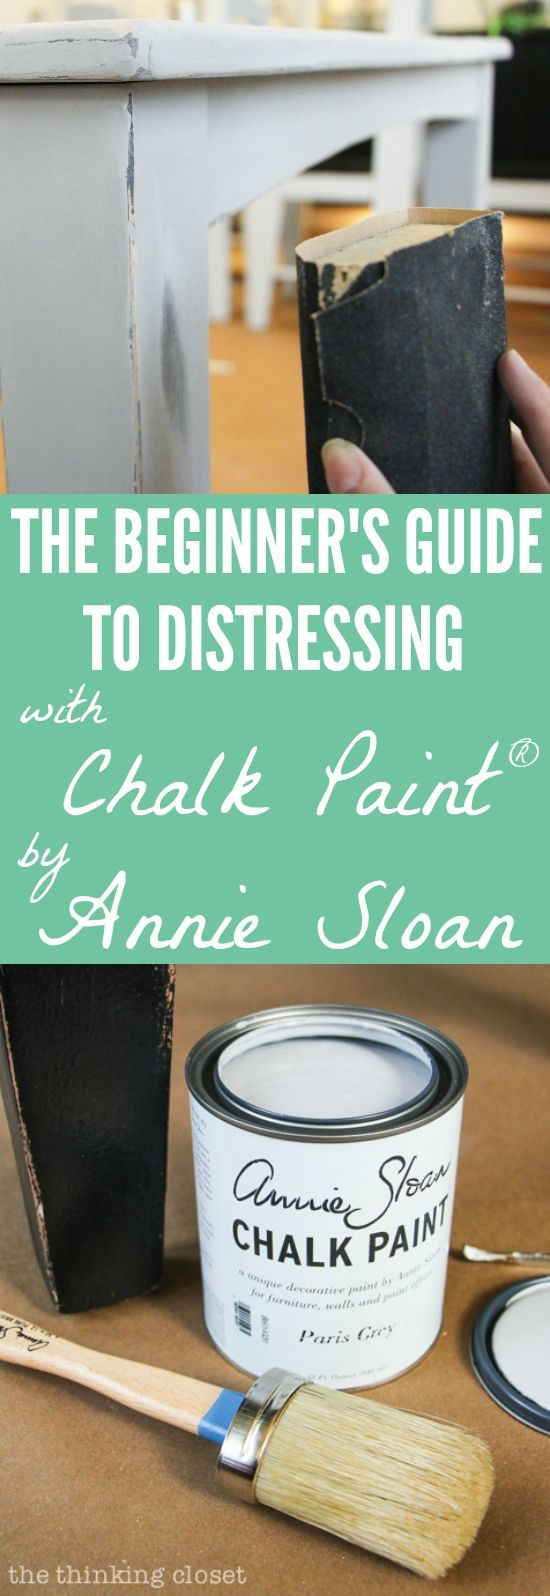 The Beginner's Guide to Distressing with Chalk Paint® by Annie Sloan - the thinking closet